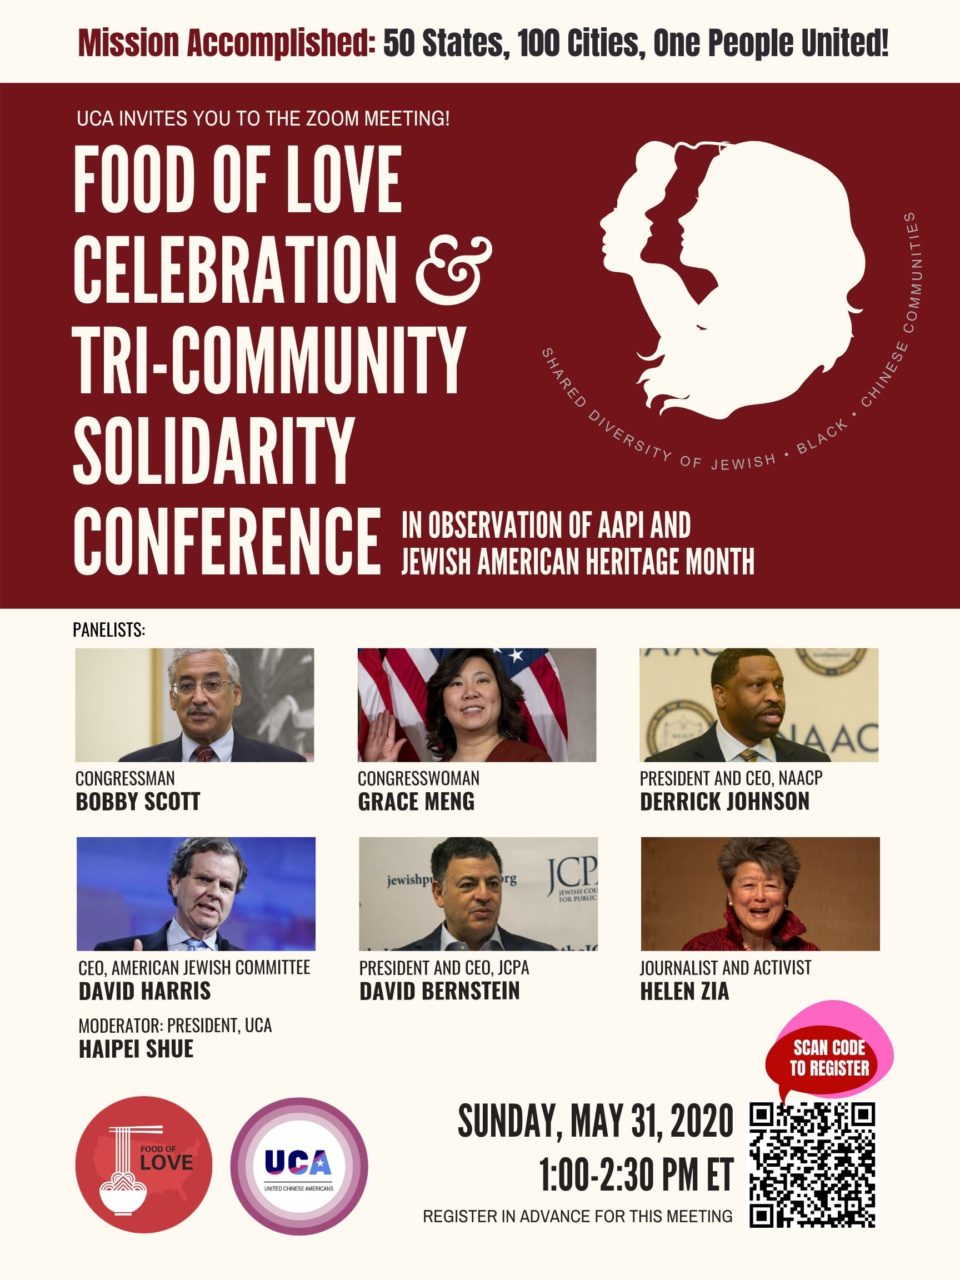 Food of Love Celebration And Tri-Community Solidarity Conference